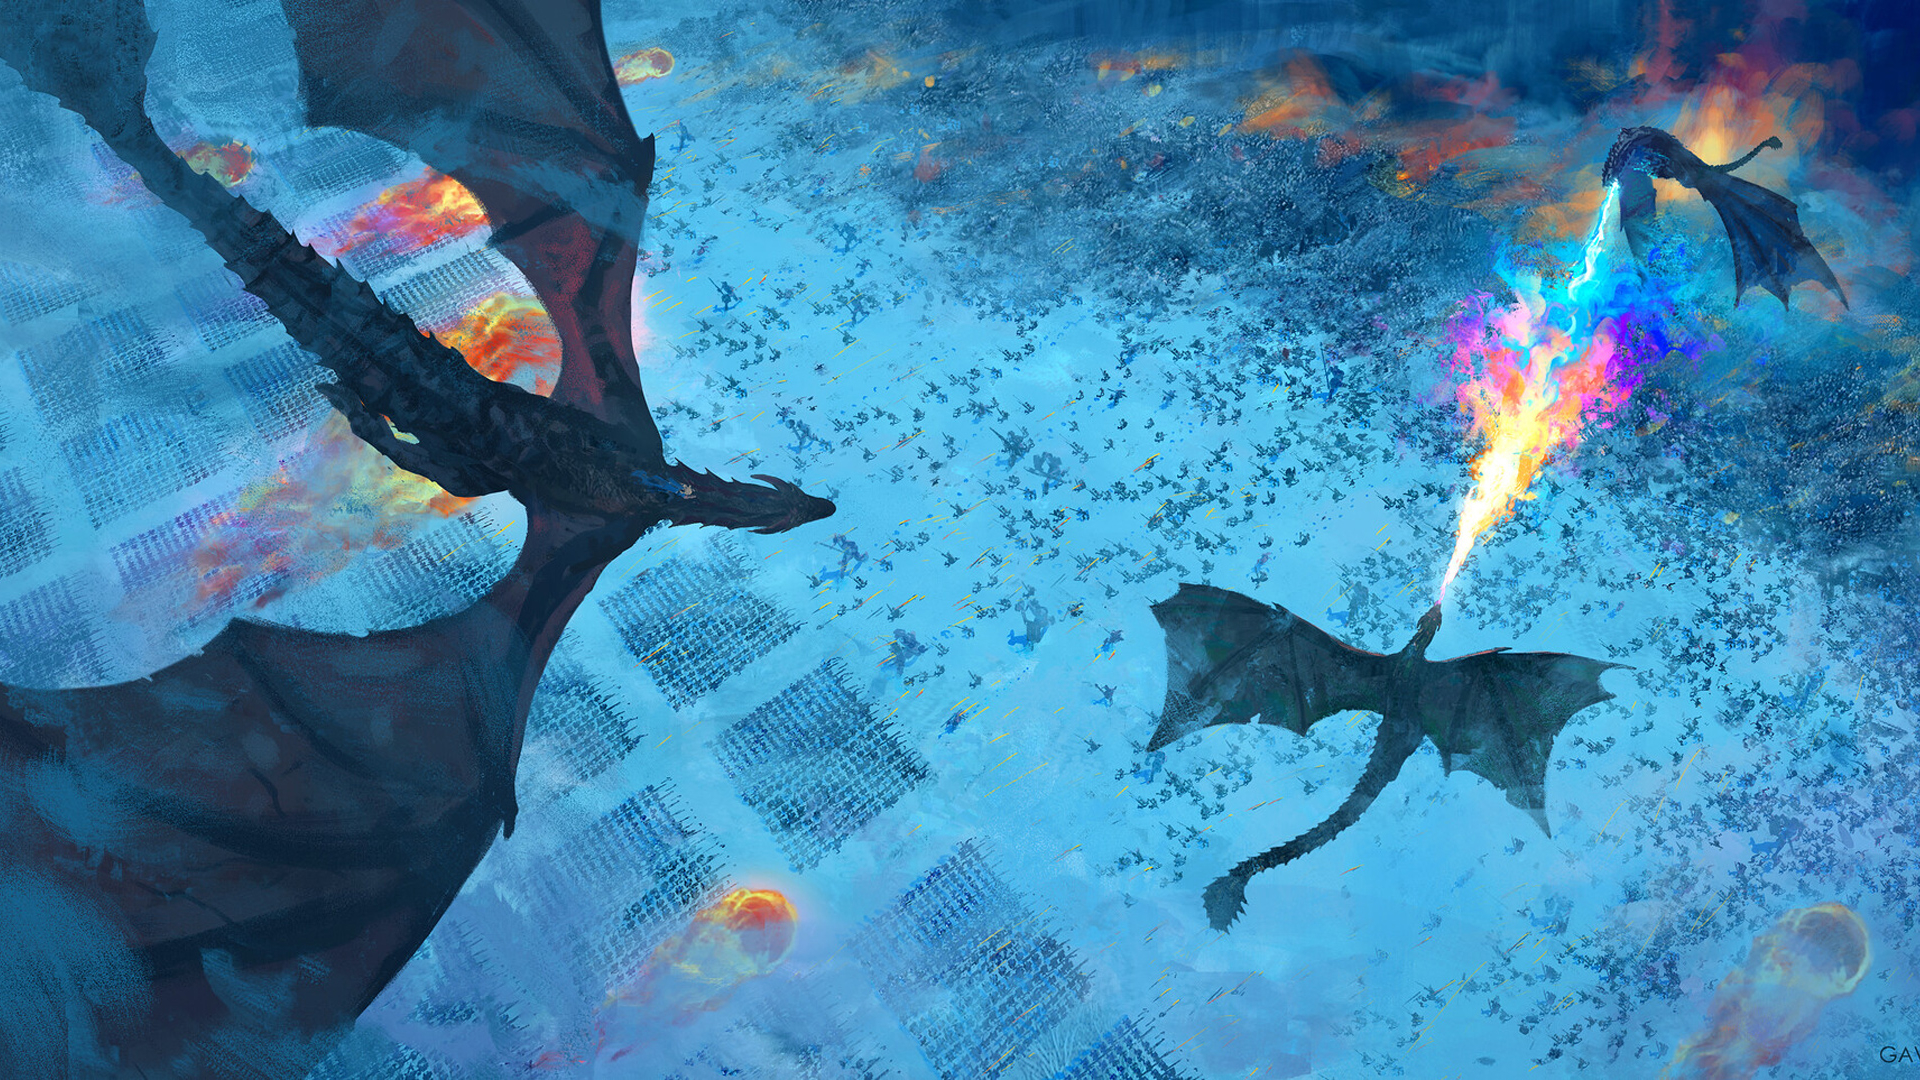 Wallpaper Of Battle Dragon Game Of Thrones Background Hd